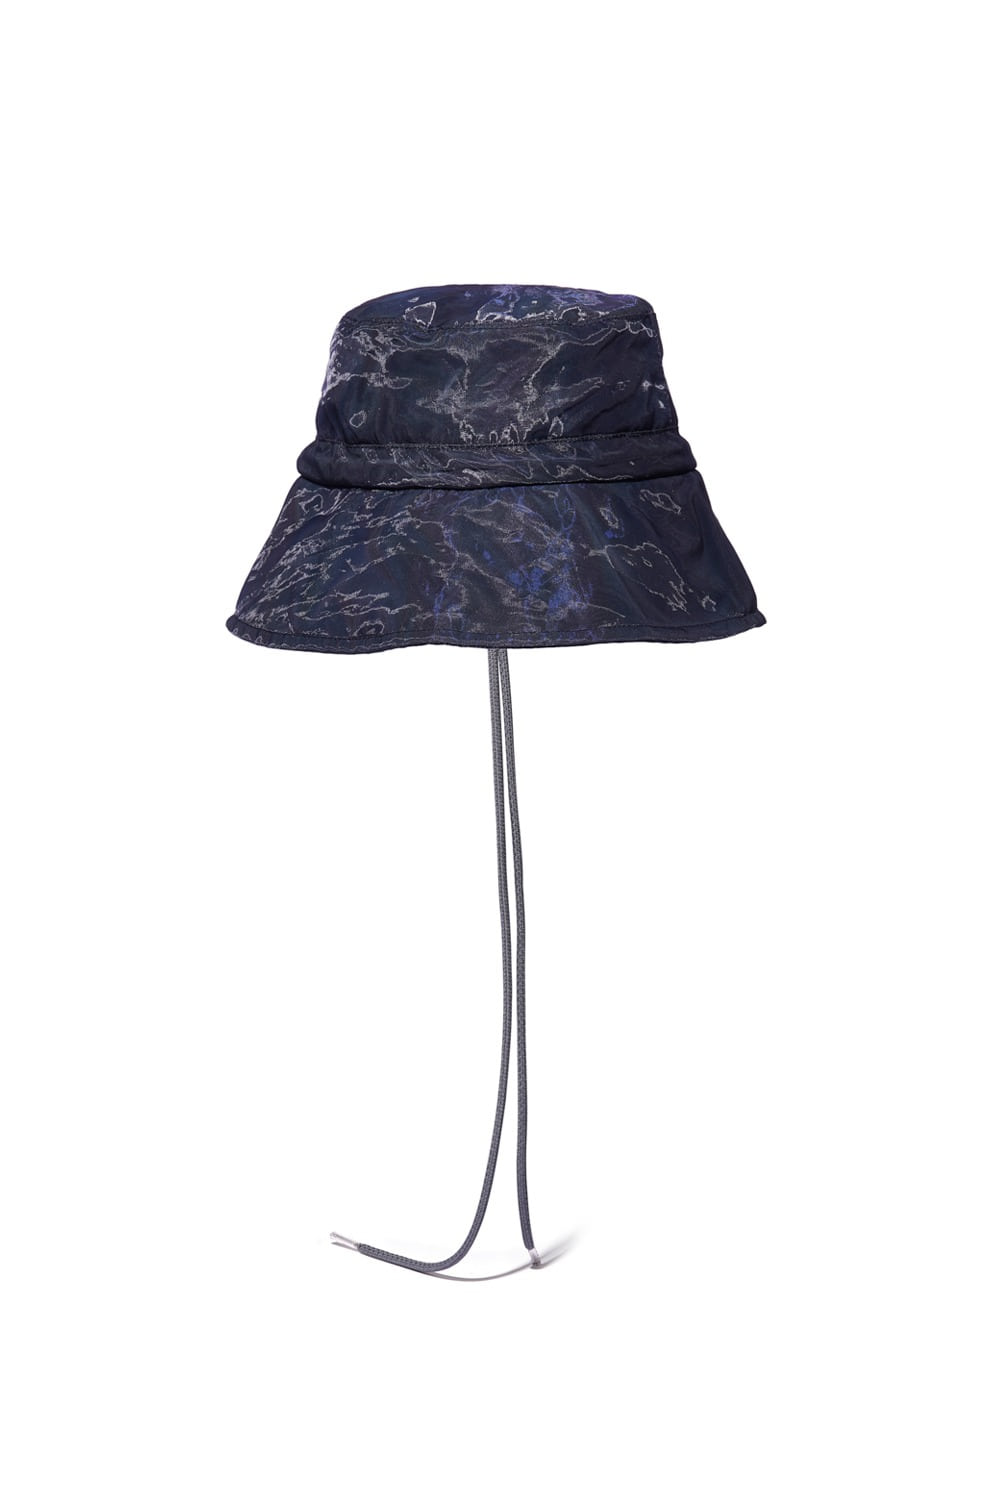 PROJECT MAGO_ORGANZA LAYERED 3M BUCKET HAT_DARK NAVY